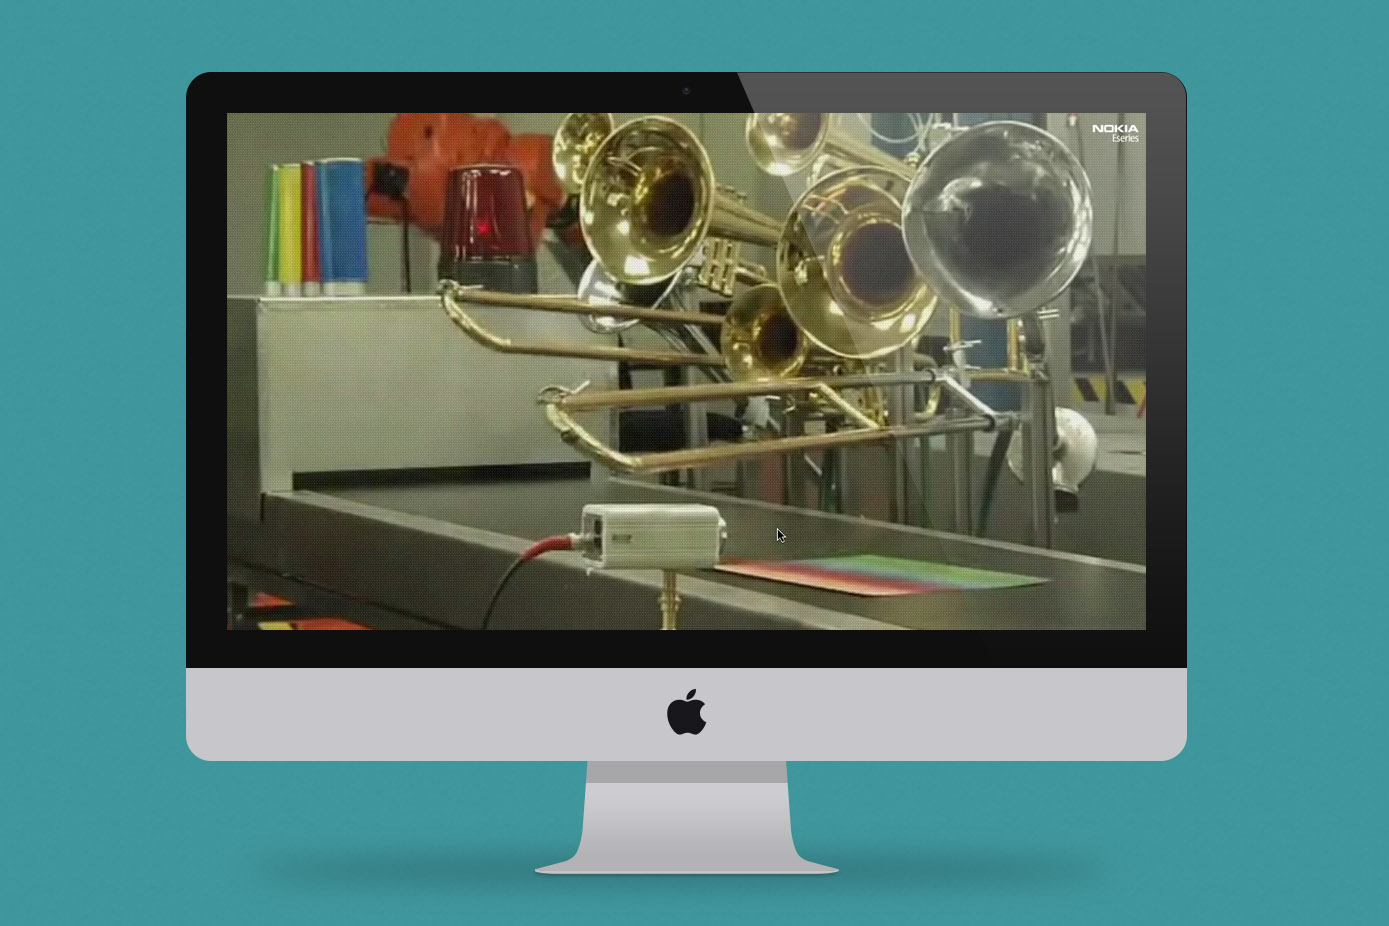 Fanfare is played on docs last yourney